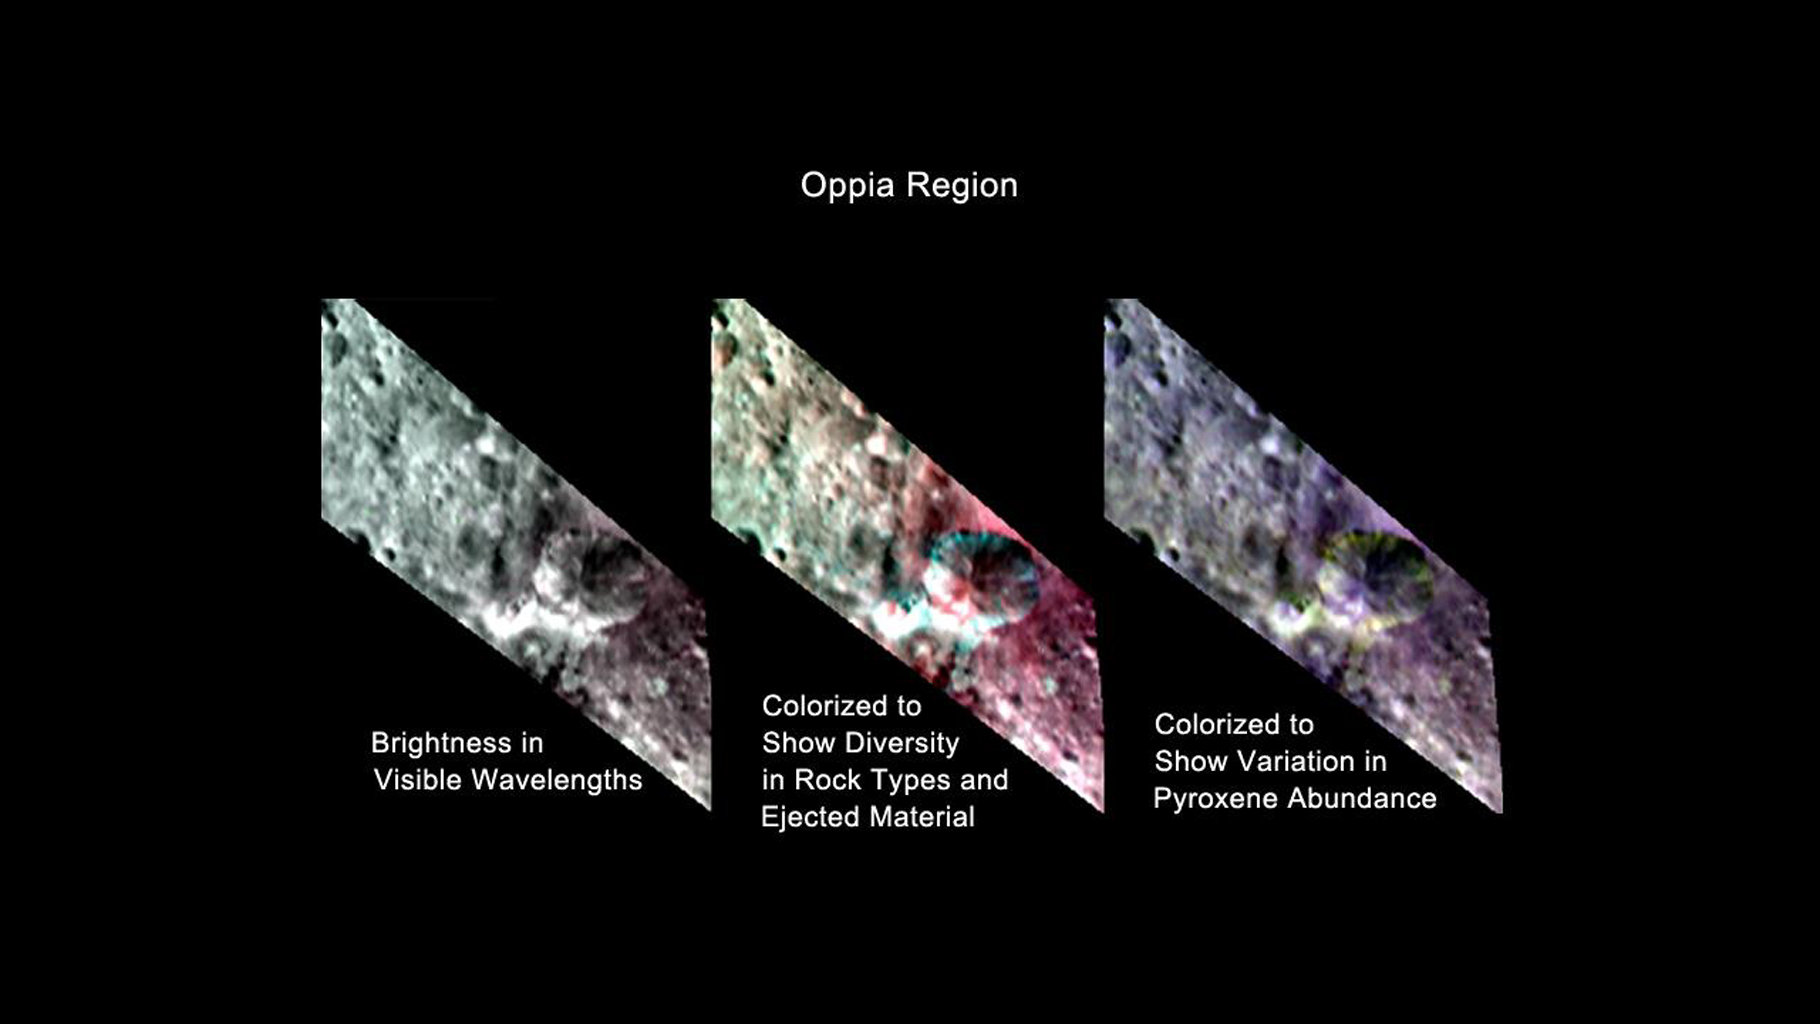 This image from NASA's Dawn mission shows three colorized views of the Oppia region in the southern hemisphere of the giant asteroid Vesta.